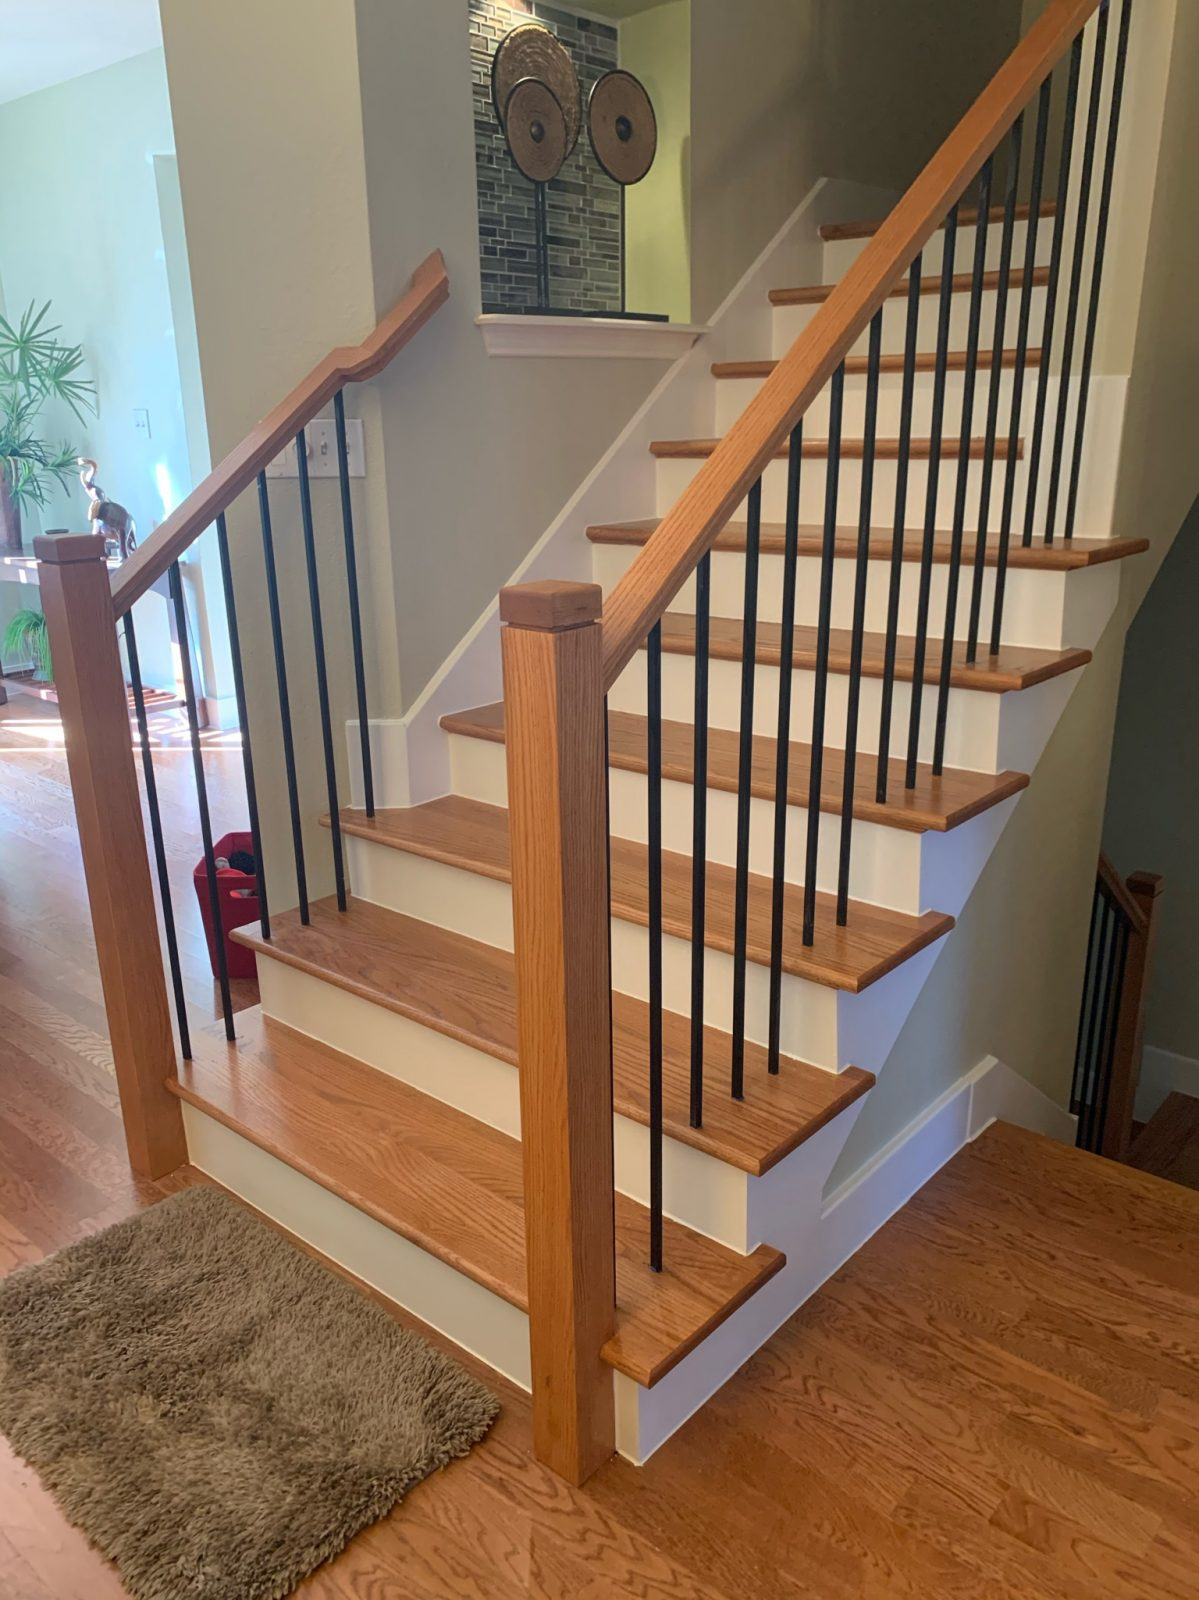 New Red Oak Stairs with New Baseboards